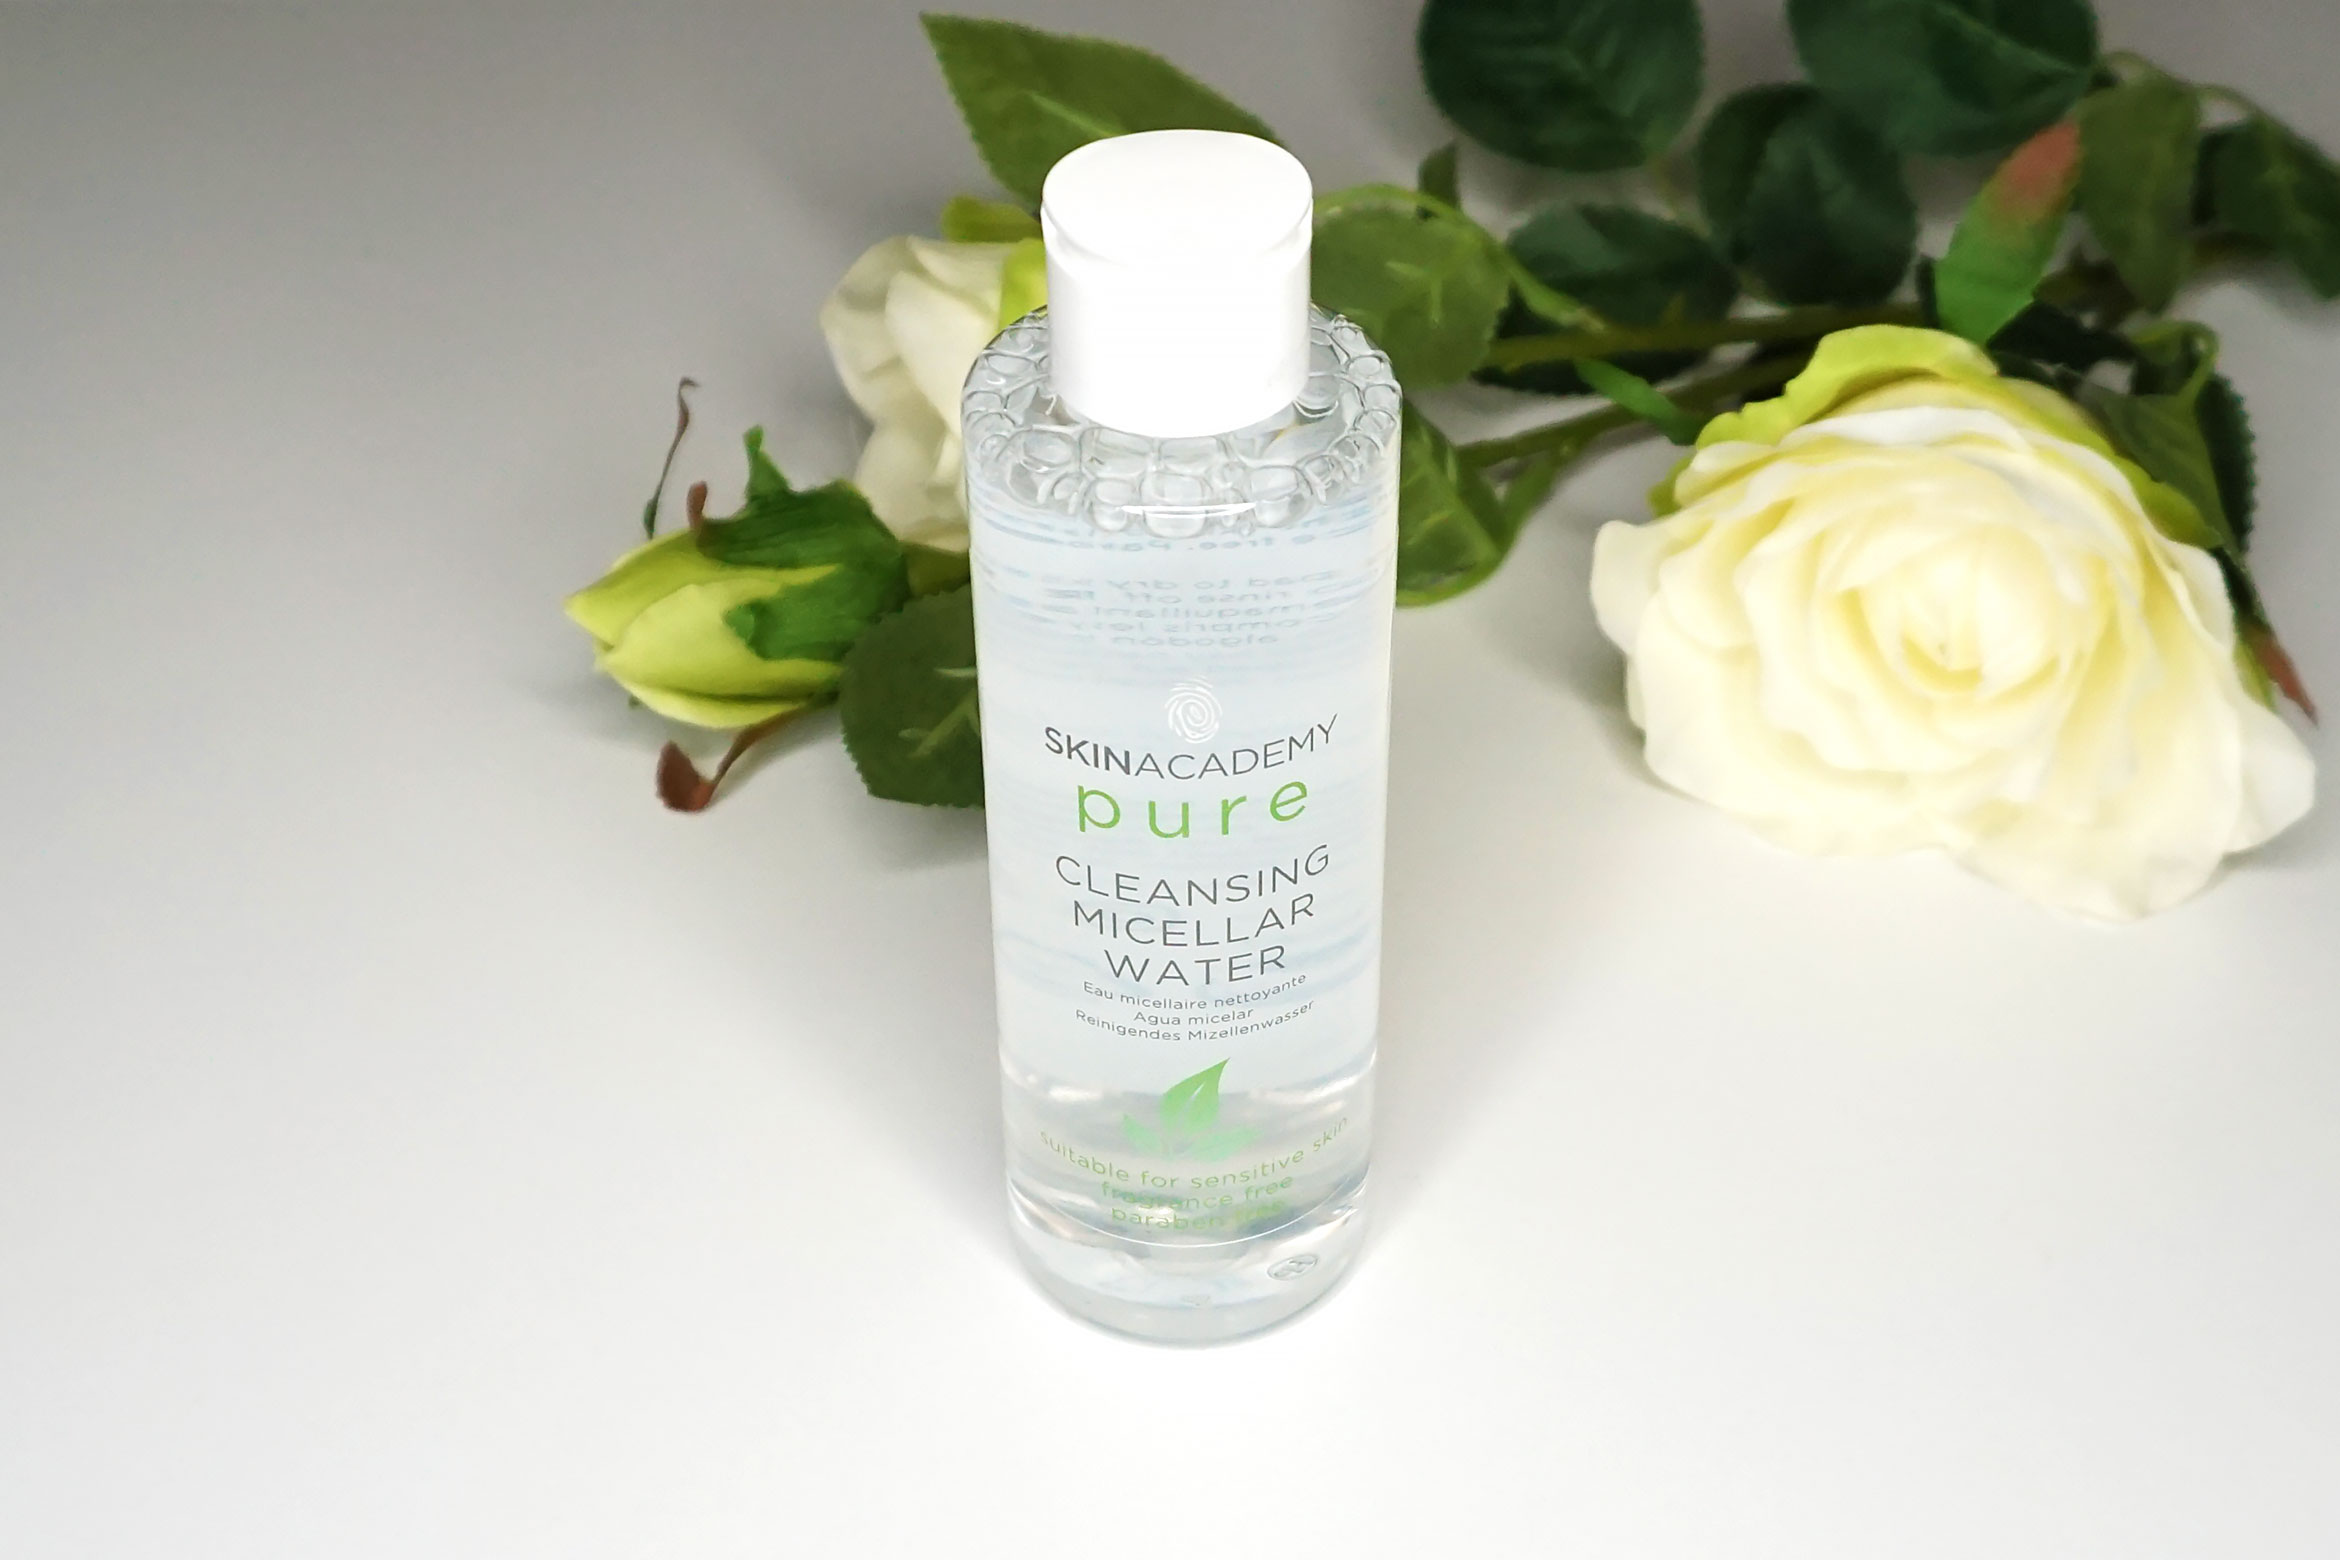 skinacademy-pure-cleansing-micellar-water-review